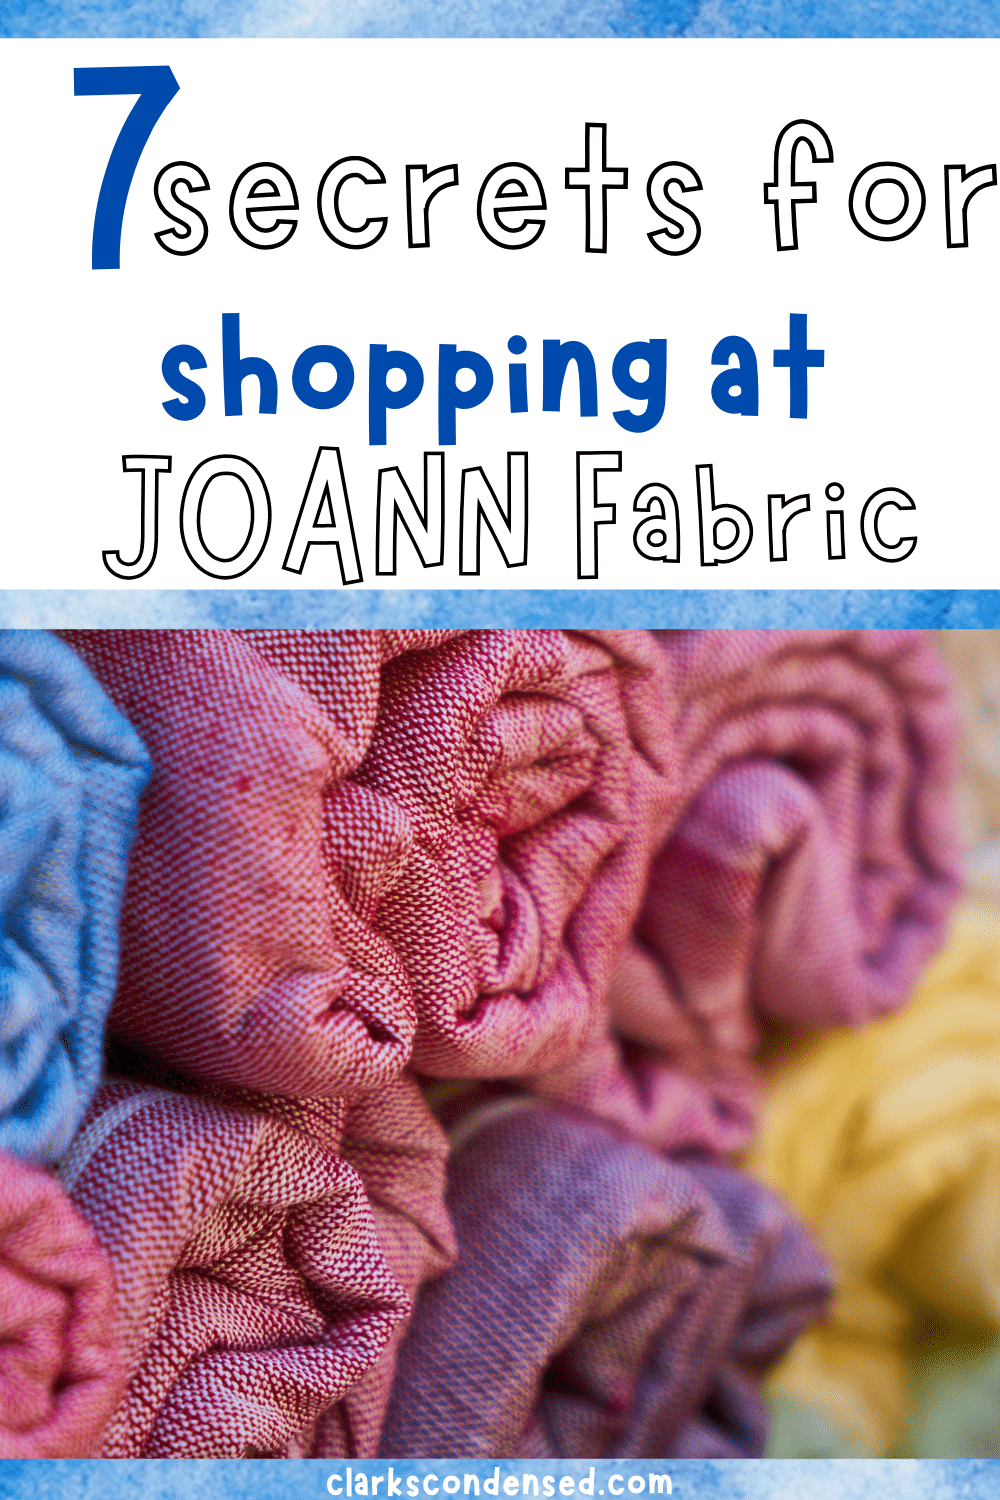 JoAnn's Fabric and Crafts is home to the best selection of fabric and a great source of DIY craft project materials and DIY home décor items. I've always been a big fan since I was little. There are just too many things you can explore and discover! I also love that they're generous with their sales and discounts! Here are some tips and tricks on how to save and maximize value for your money when shopping at Joann's Fabric and Crafts, whether online or offline. #artsandcrafts #fabric #coupons via @clarkscondensed